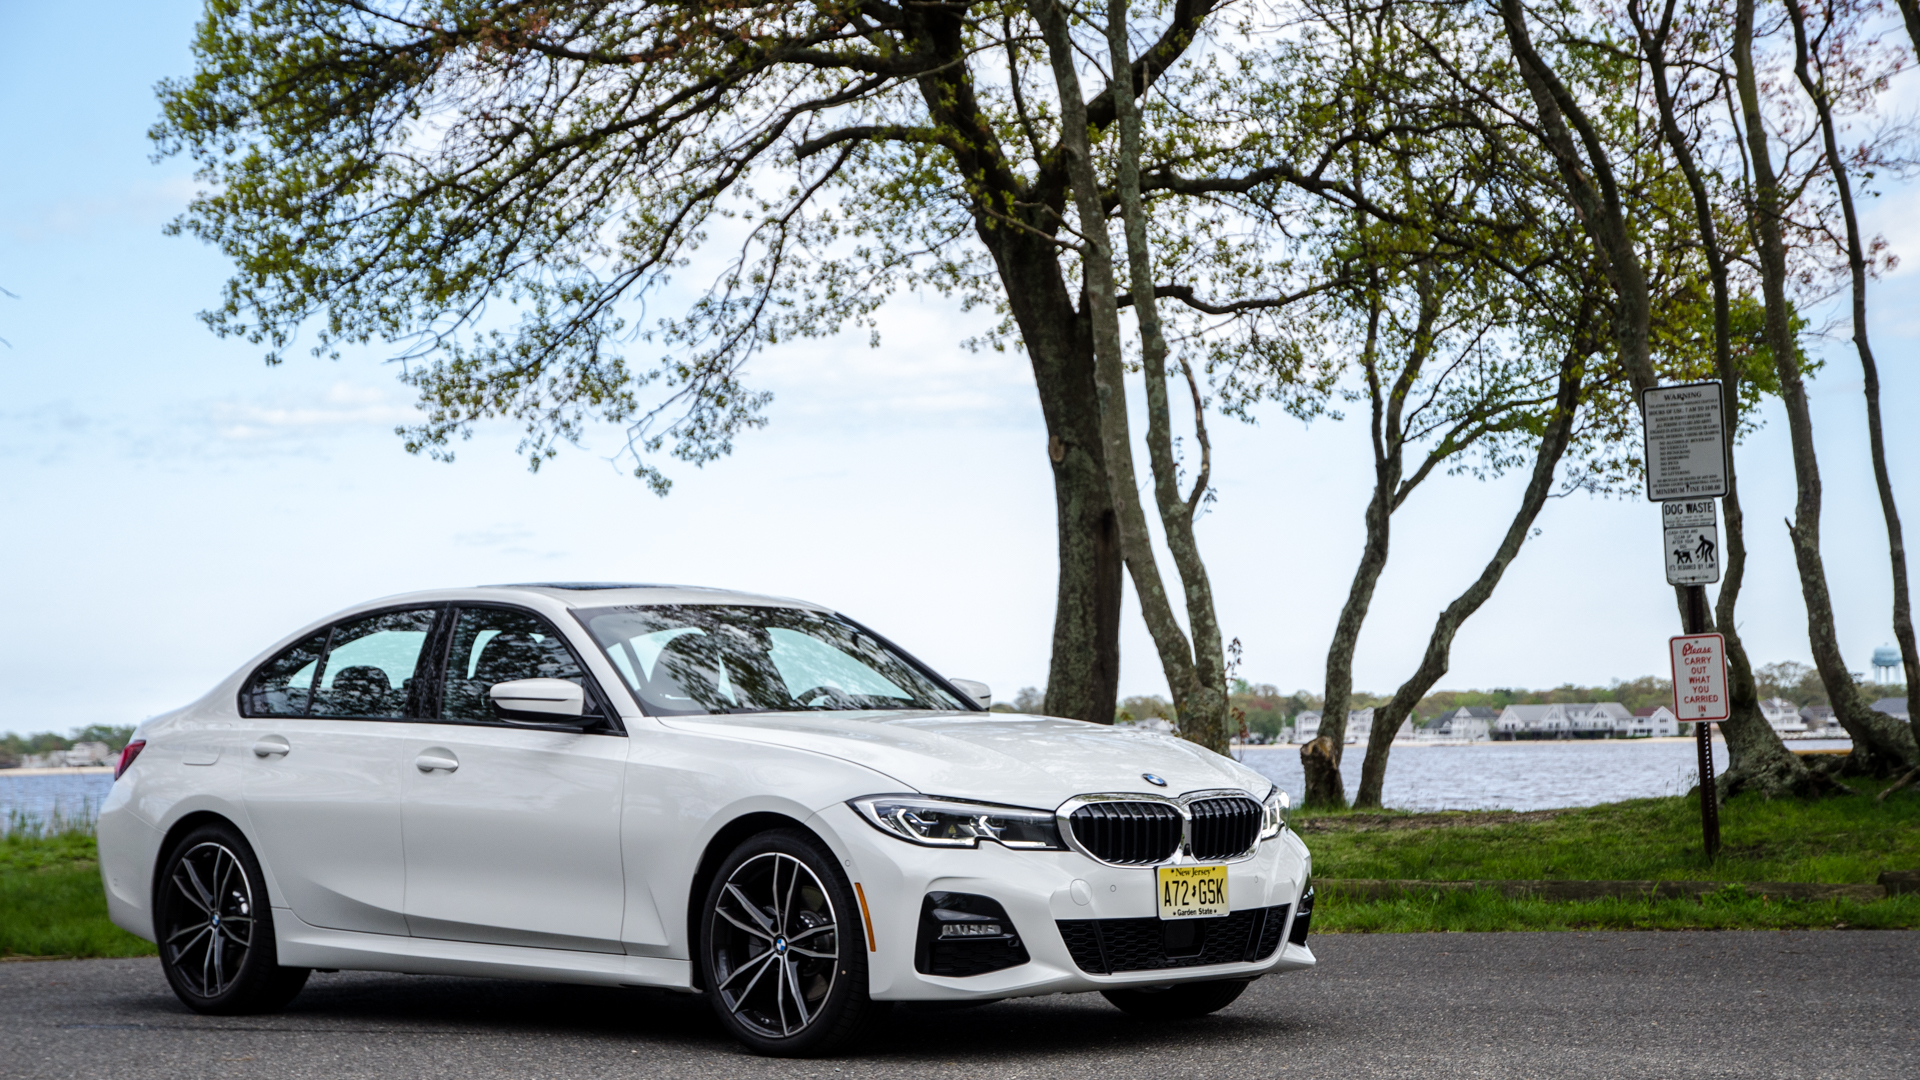 C&D Test: BMW 330i vs Alfa Romeo Giulia, Genesis G70 and Volvo S60